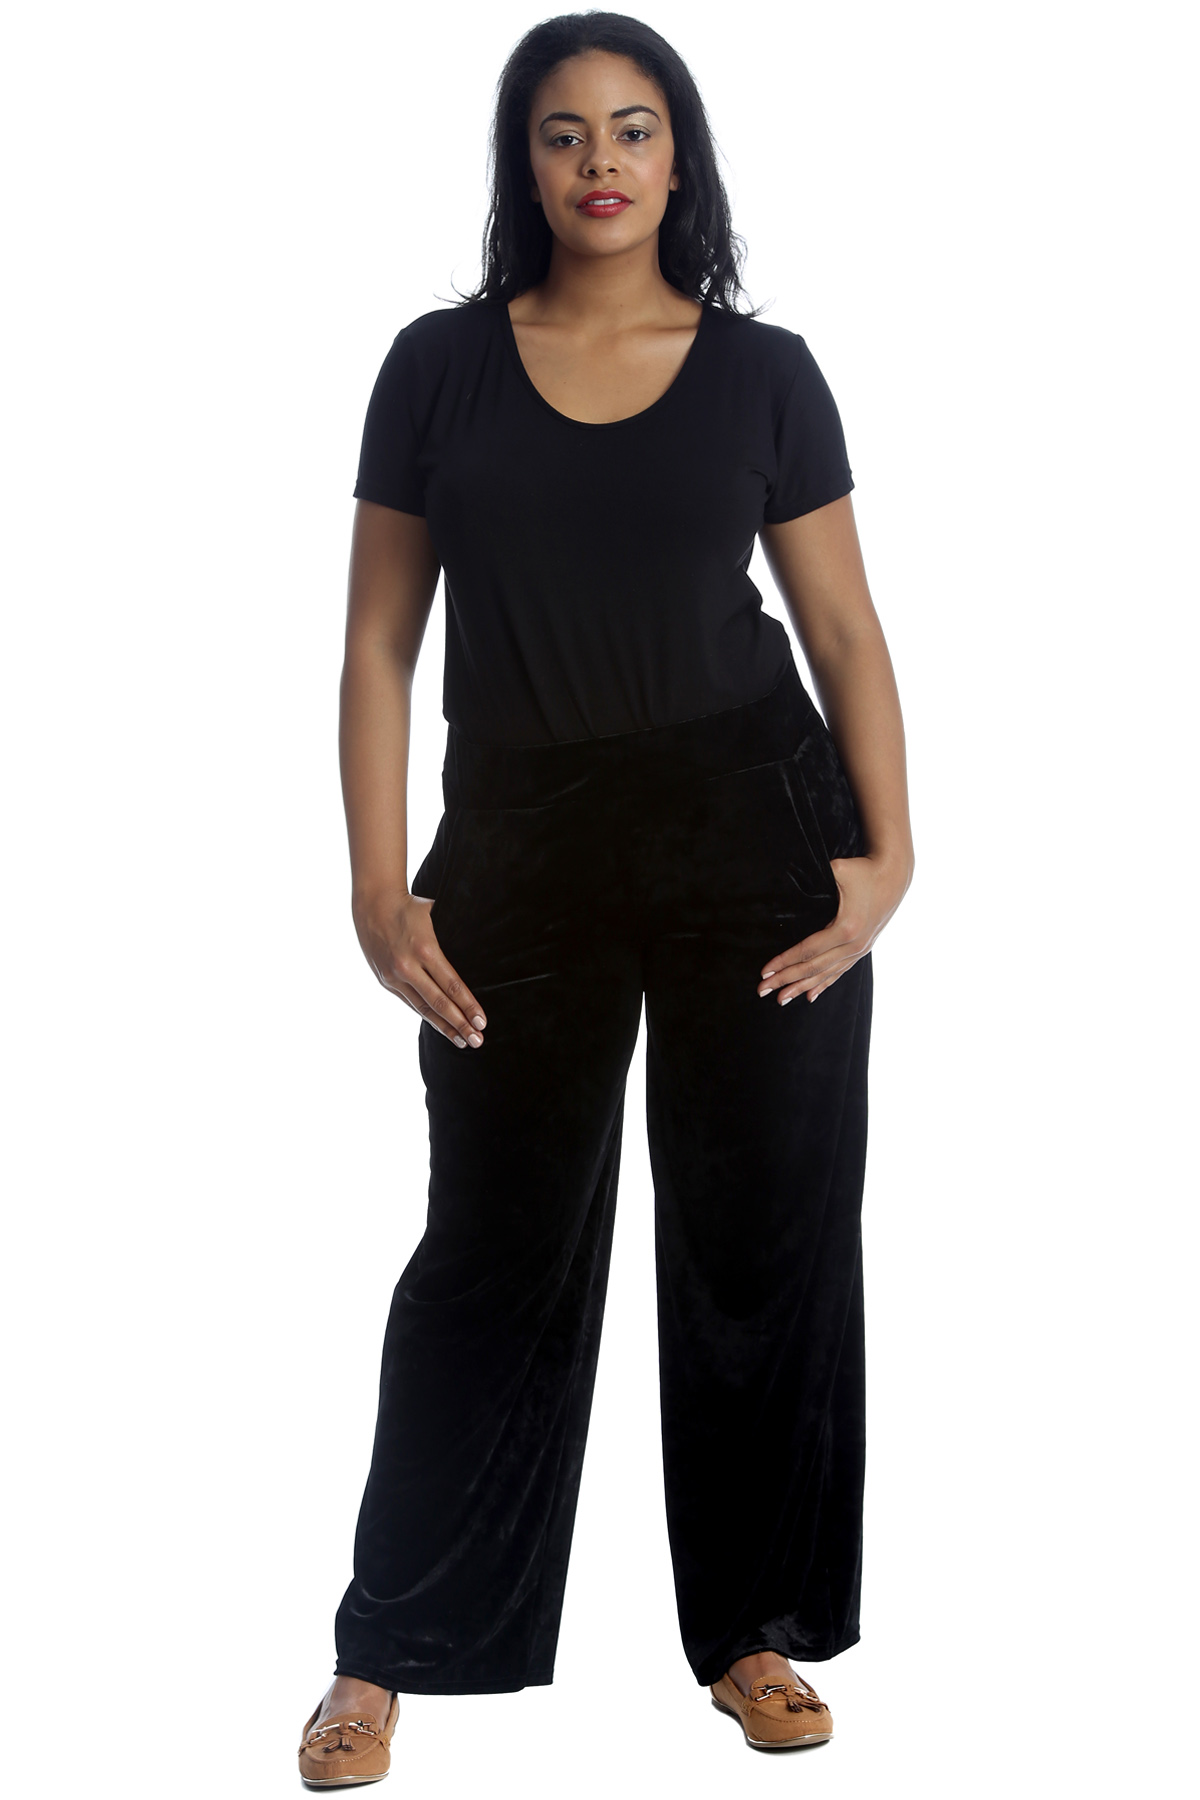 Shop Target for Plus Size Pants you will love at great low prices. Spend $35+ or use your REDcard & get free 2-day shipping on most items or same-day pick-up in store.